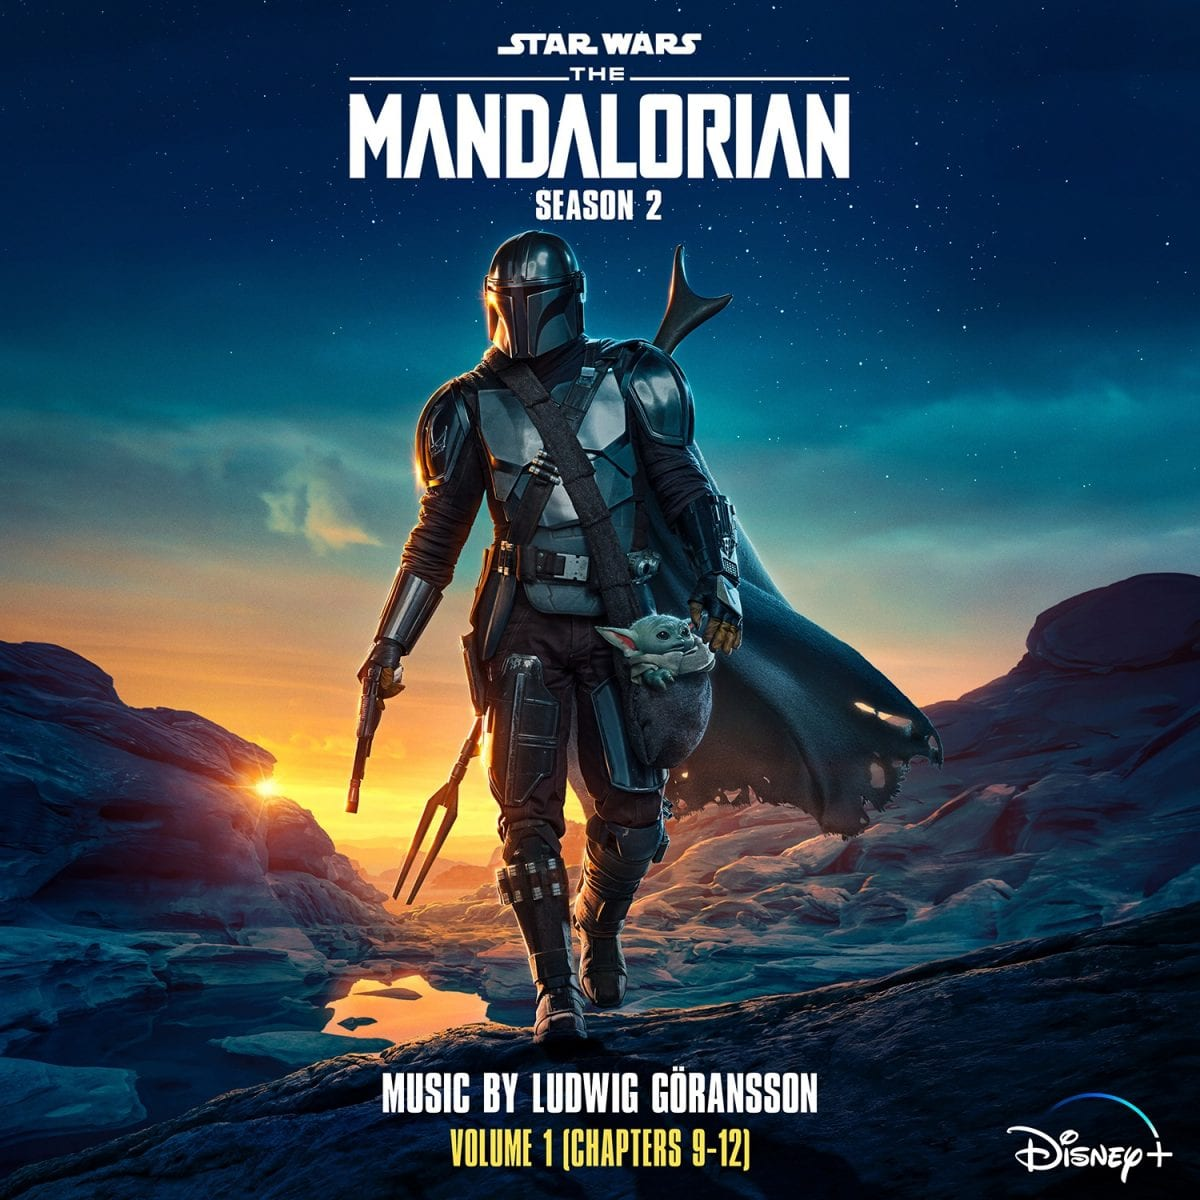 First Volume of The Mandalorian Season 2's Soundtrack Released